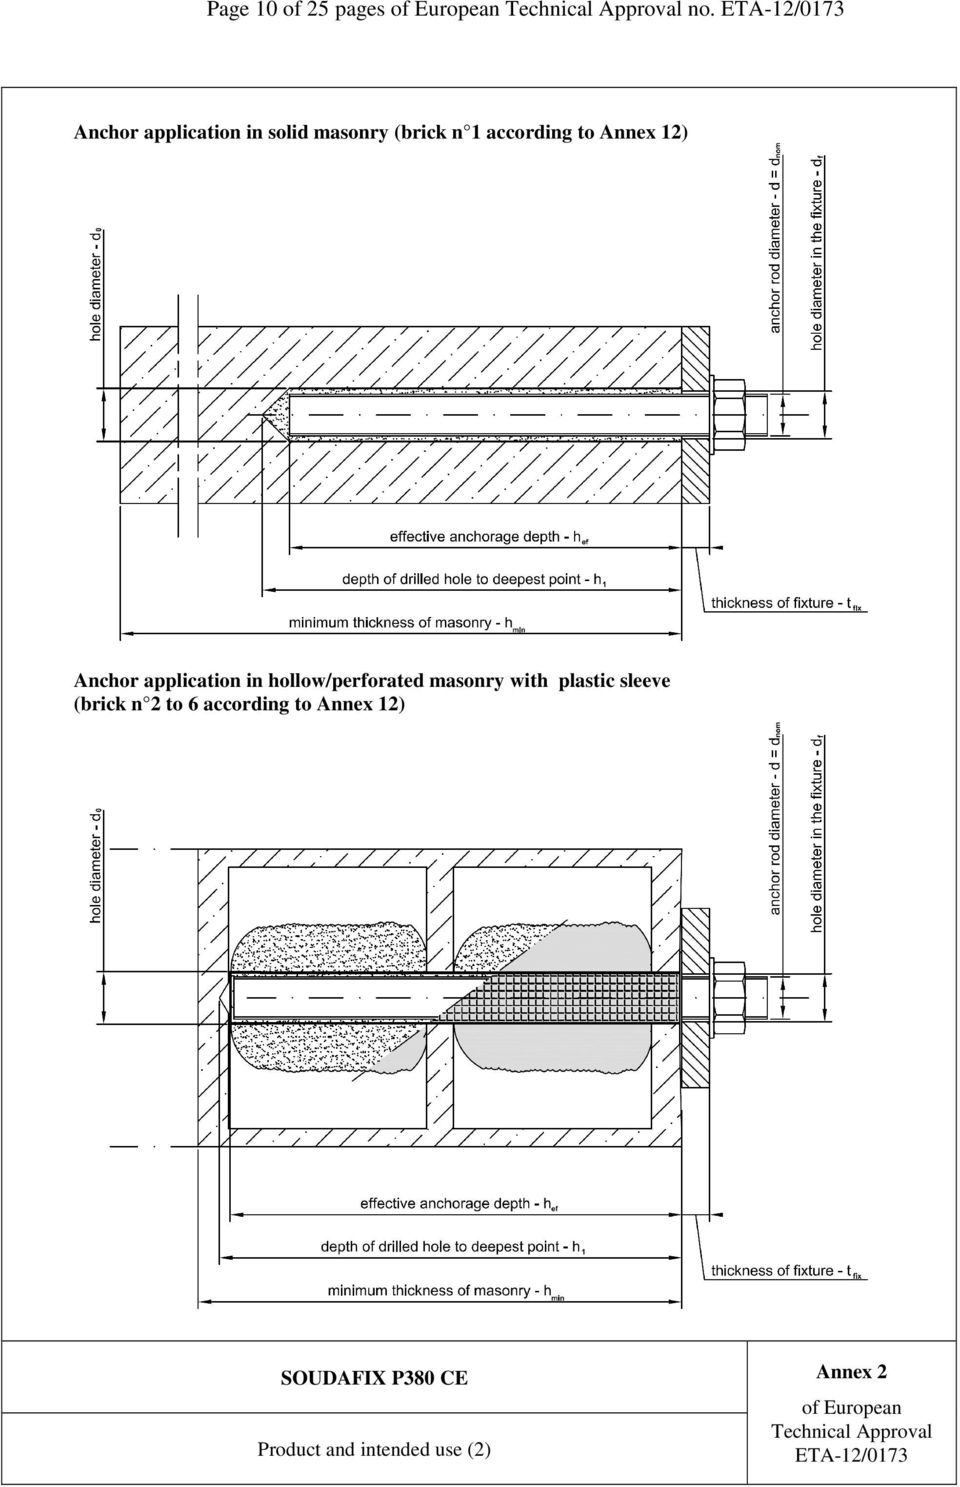 Annex 12) Anchor application in hollow/perforated masonry with